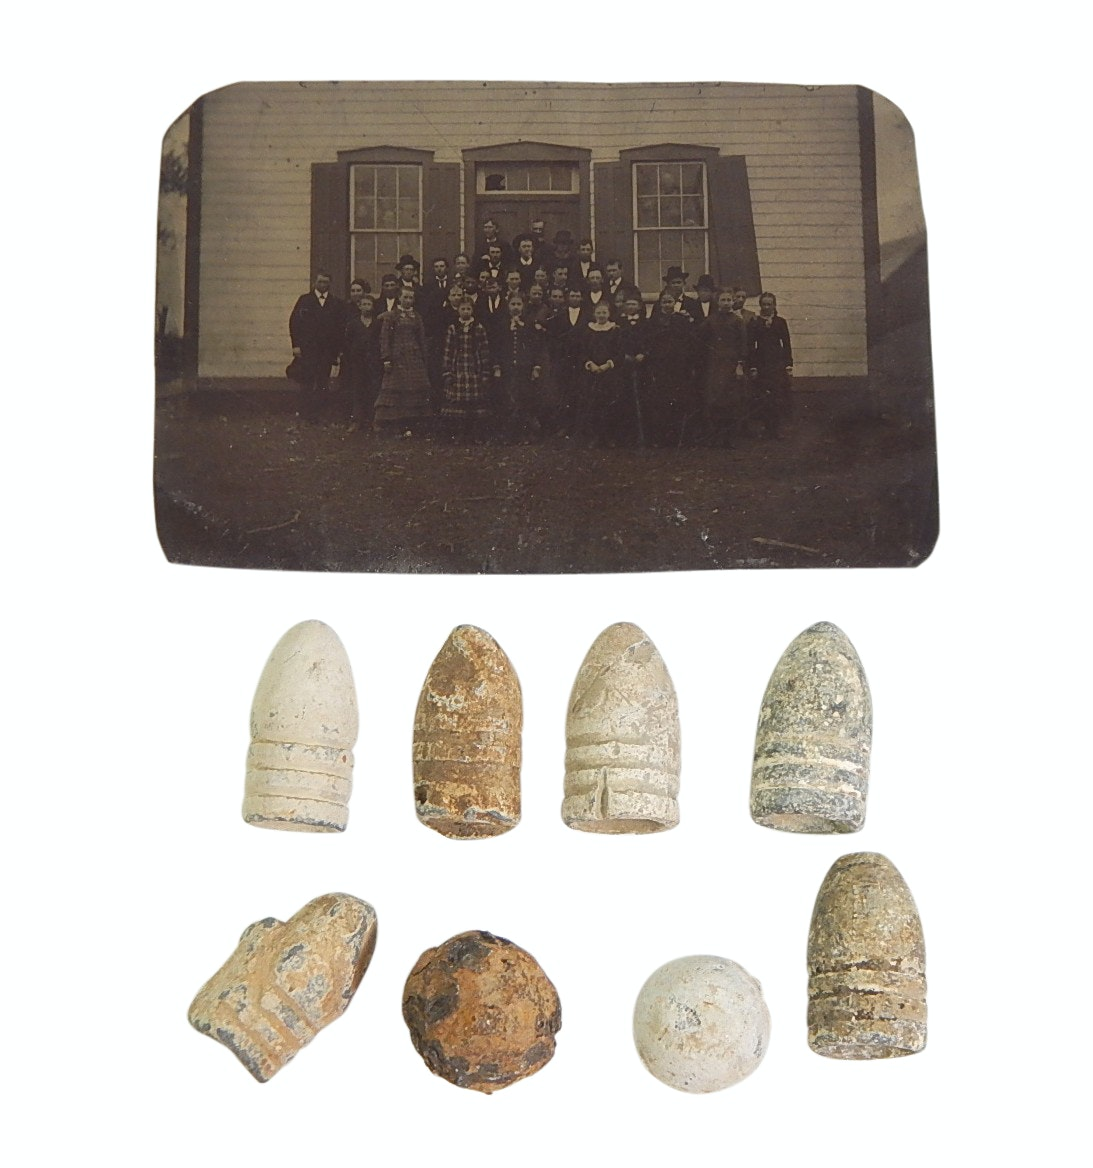 U.S. Civil War Era Lead Bullets, Musket Balls, and Tin Type Photograph